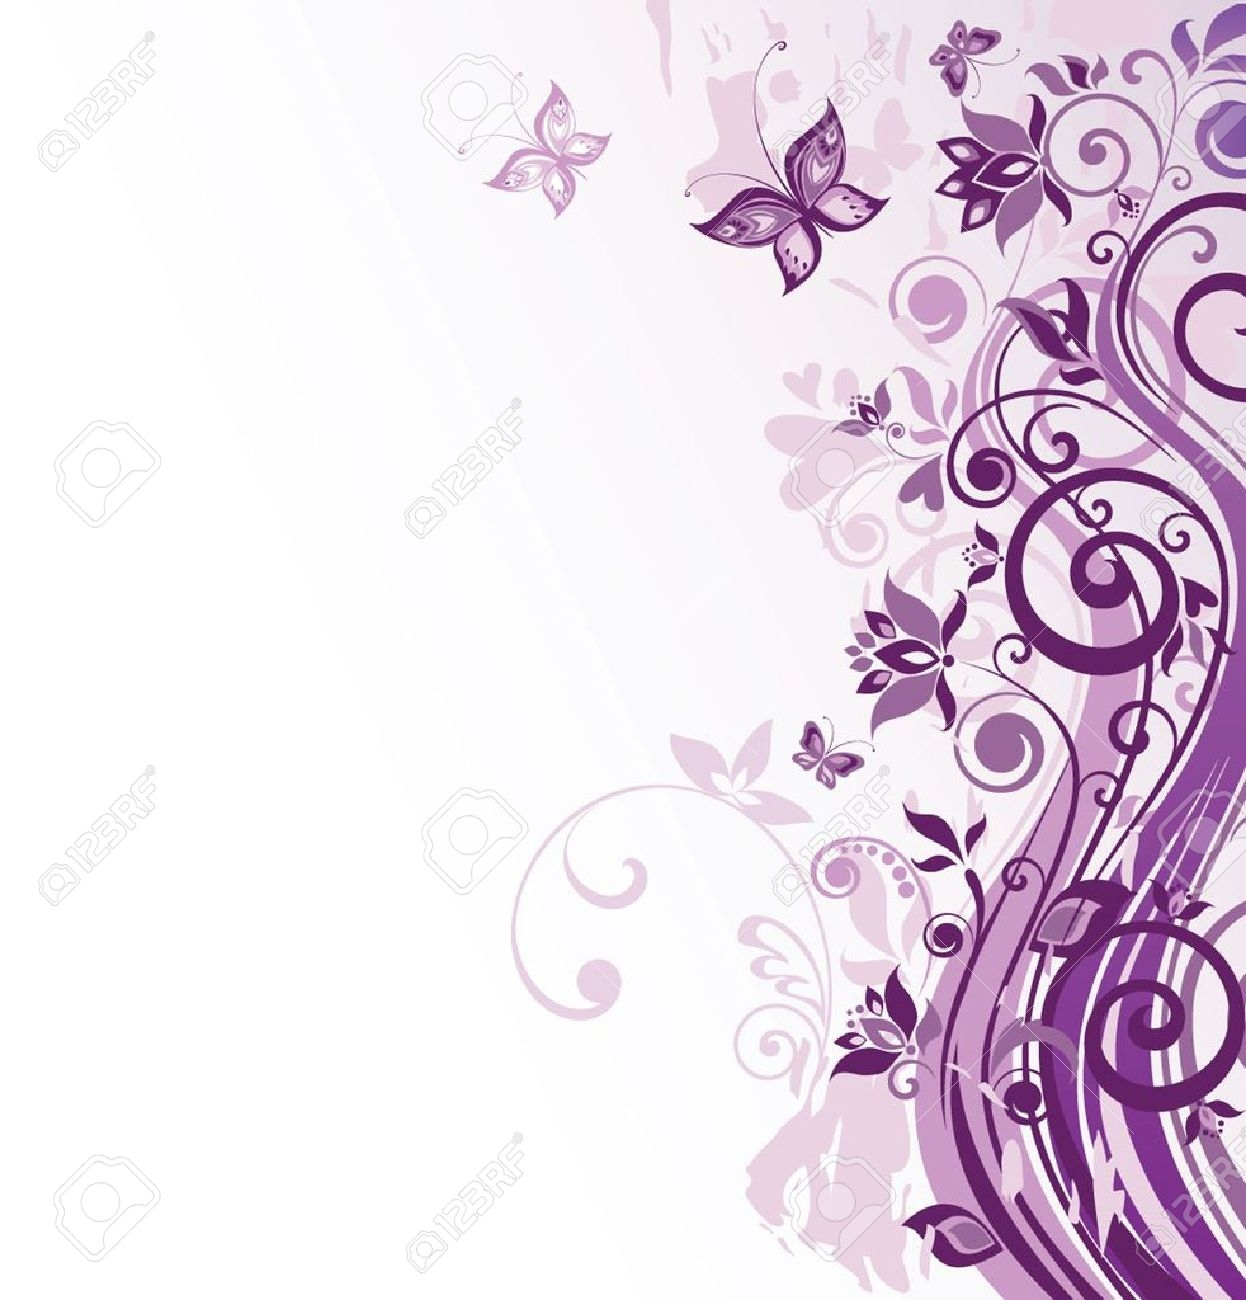 Lavender Background Wedding: Swallowtail Butterfly Border Clipart 20 Free Cliparts